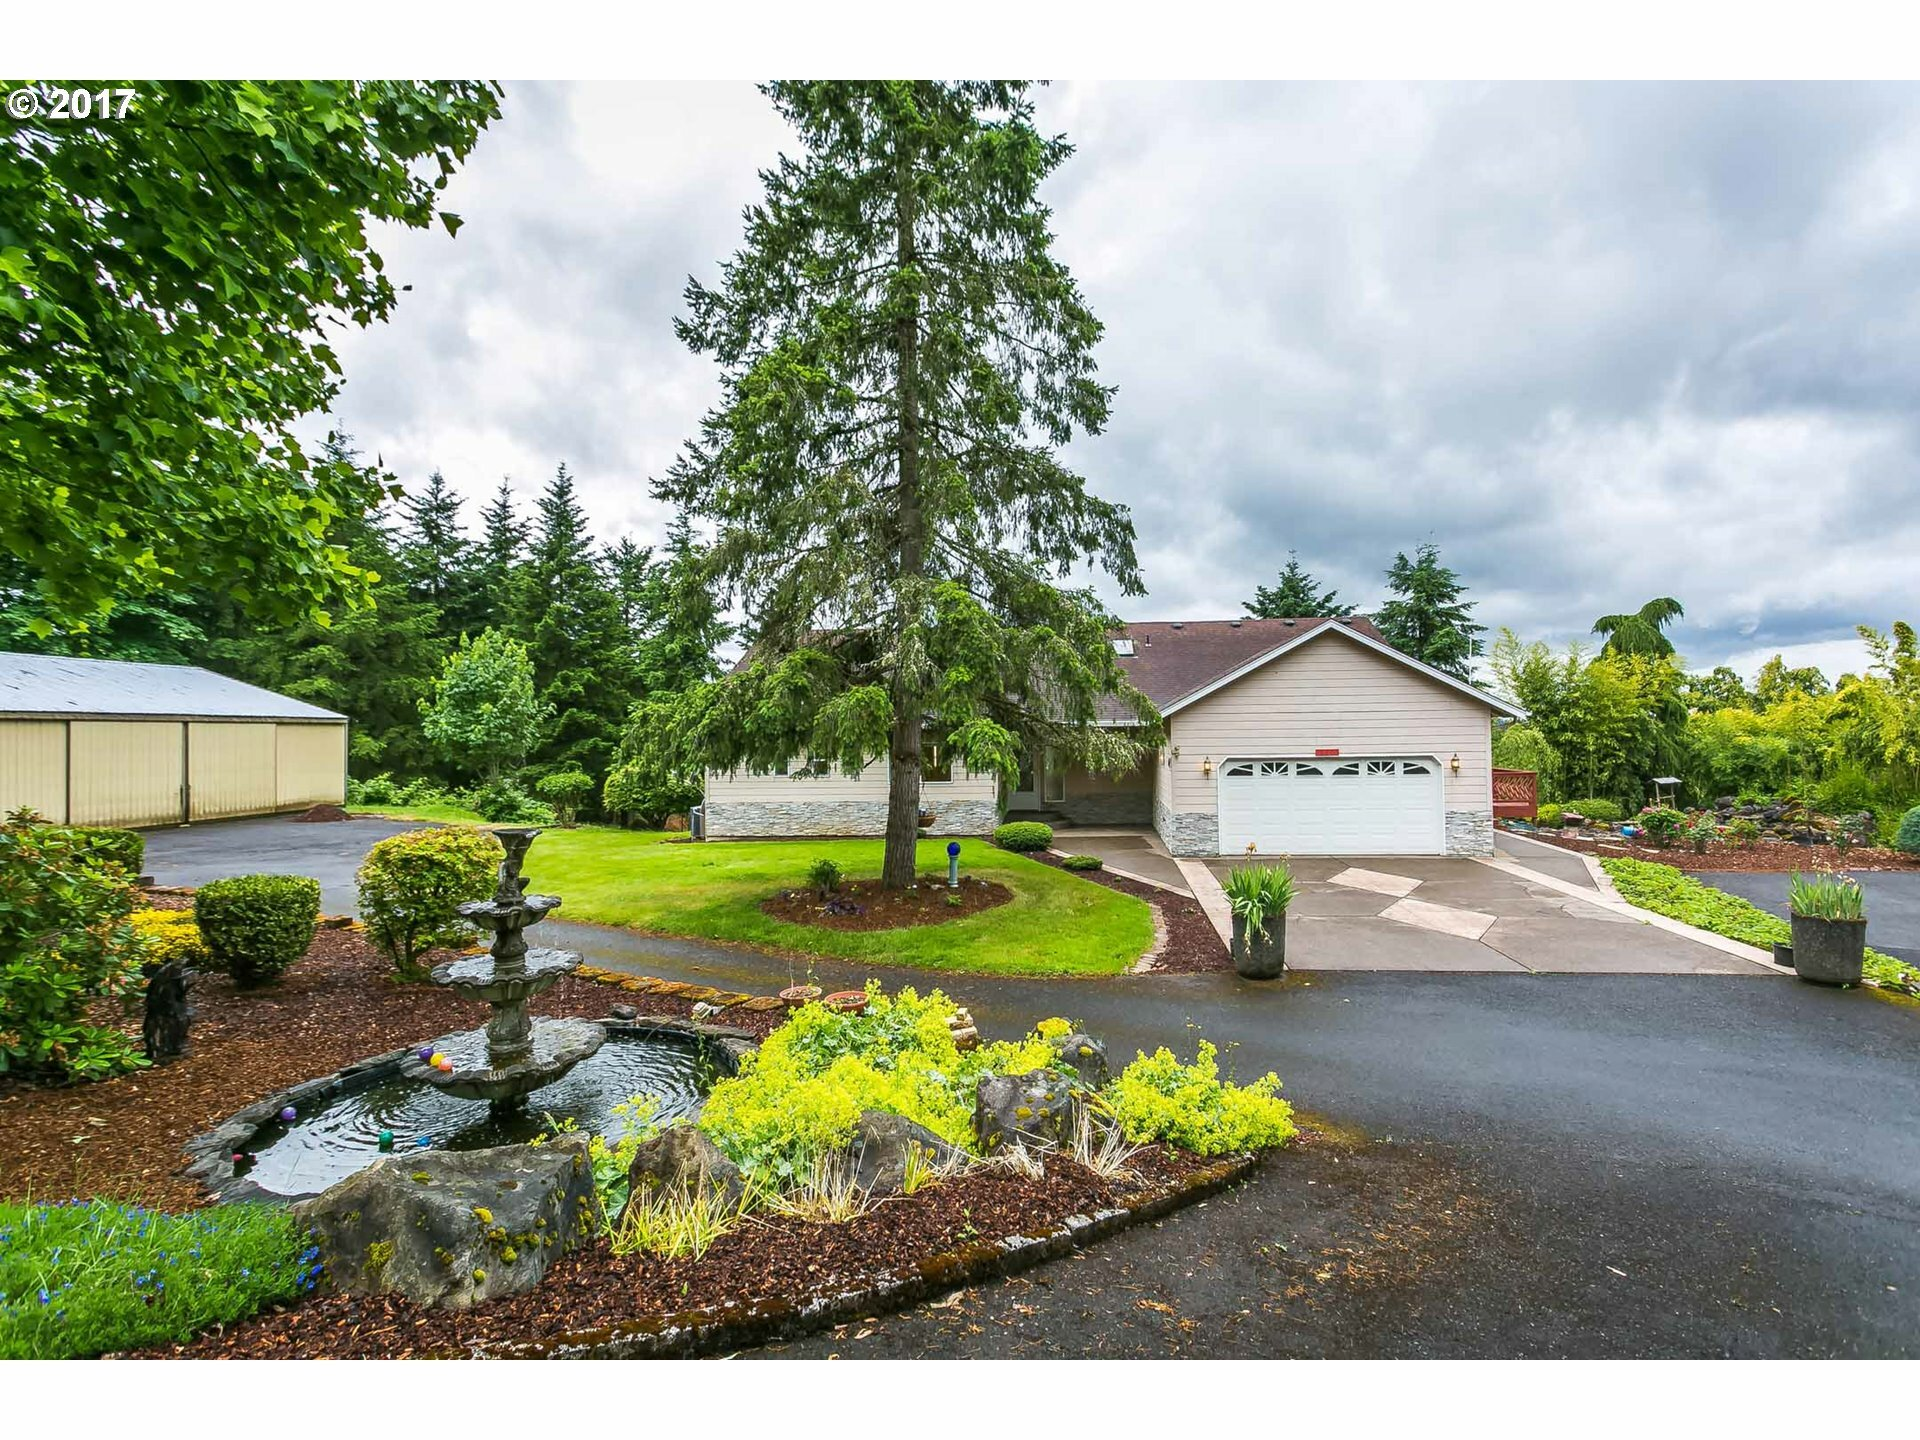 16000 Ne 185th Ave, Brush Prairie, WA - USA (photo 1)